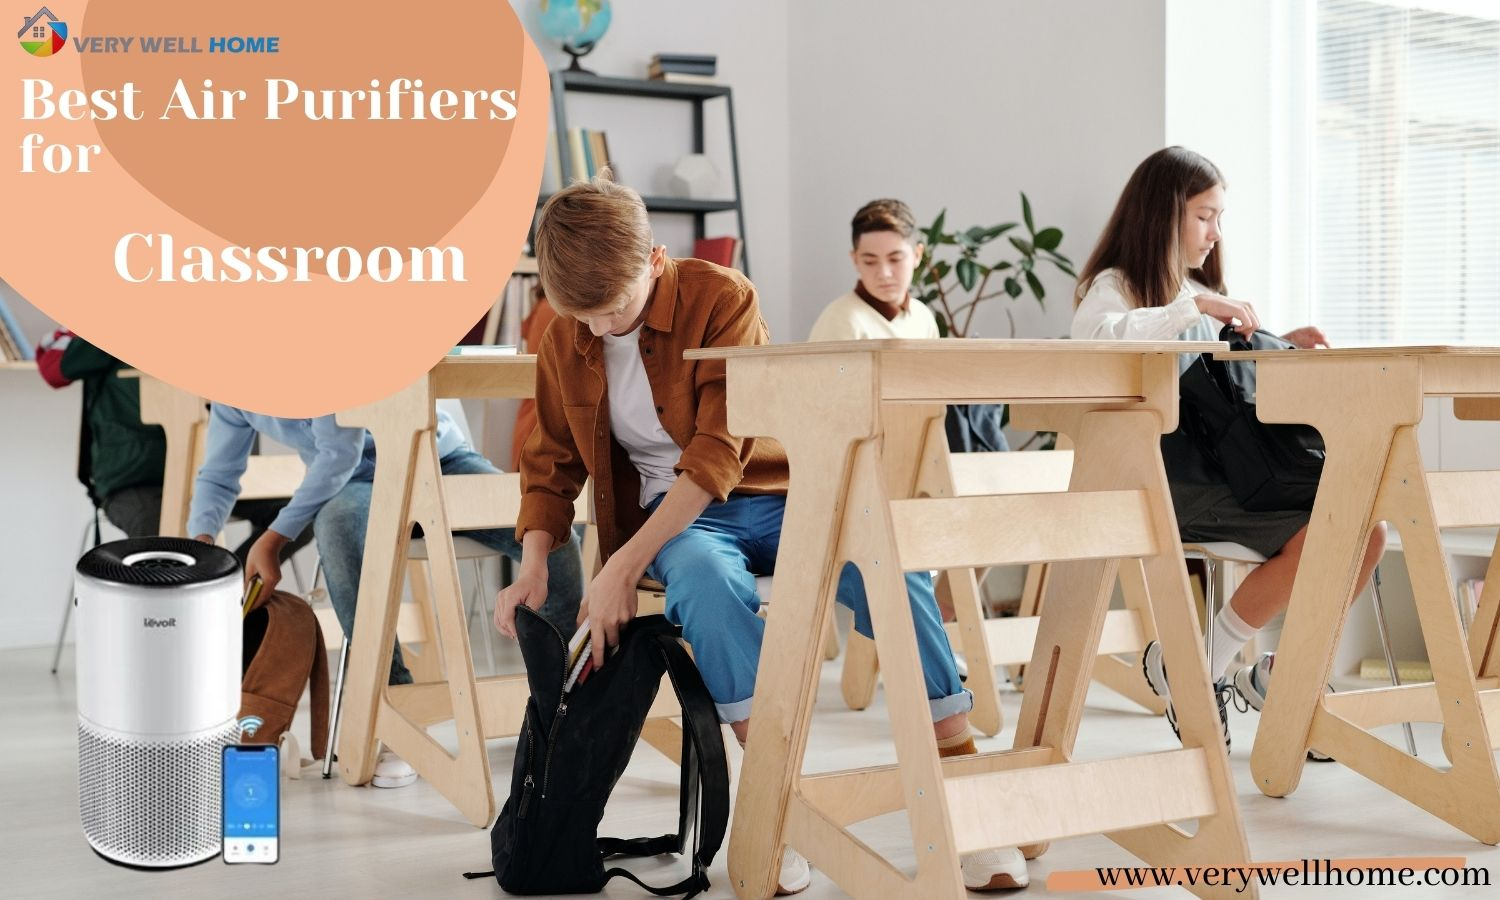 Best Air Purifiers for Classroom